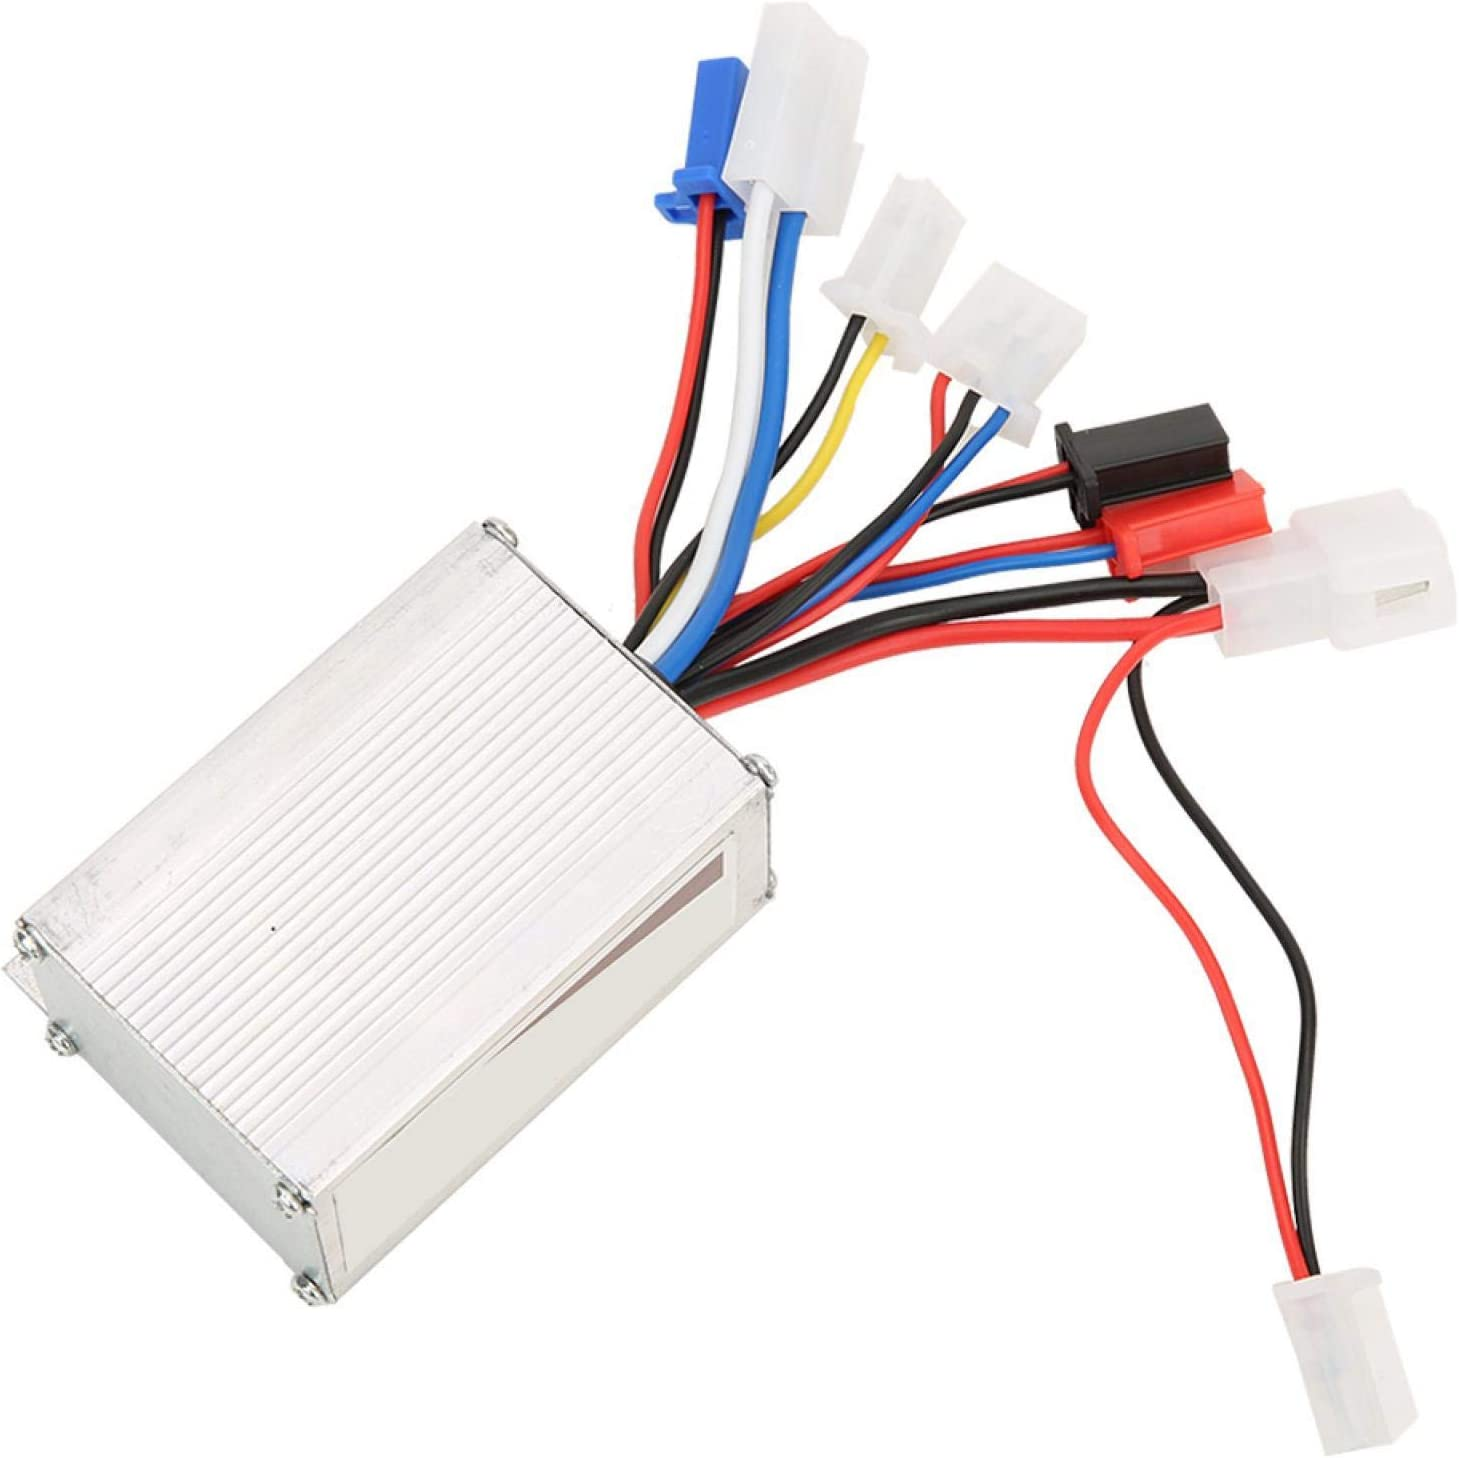 Motor Limited Special Price Brushed New York Mall Controller Low Malfunction Box